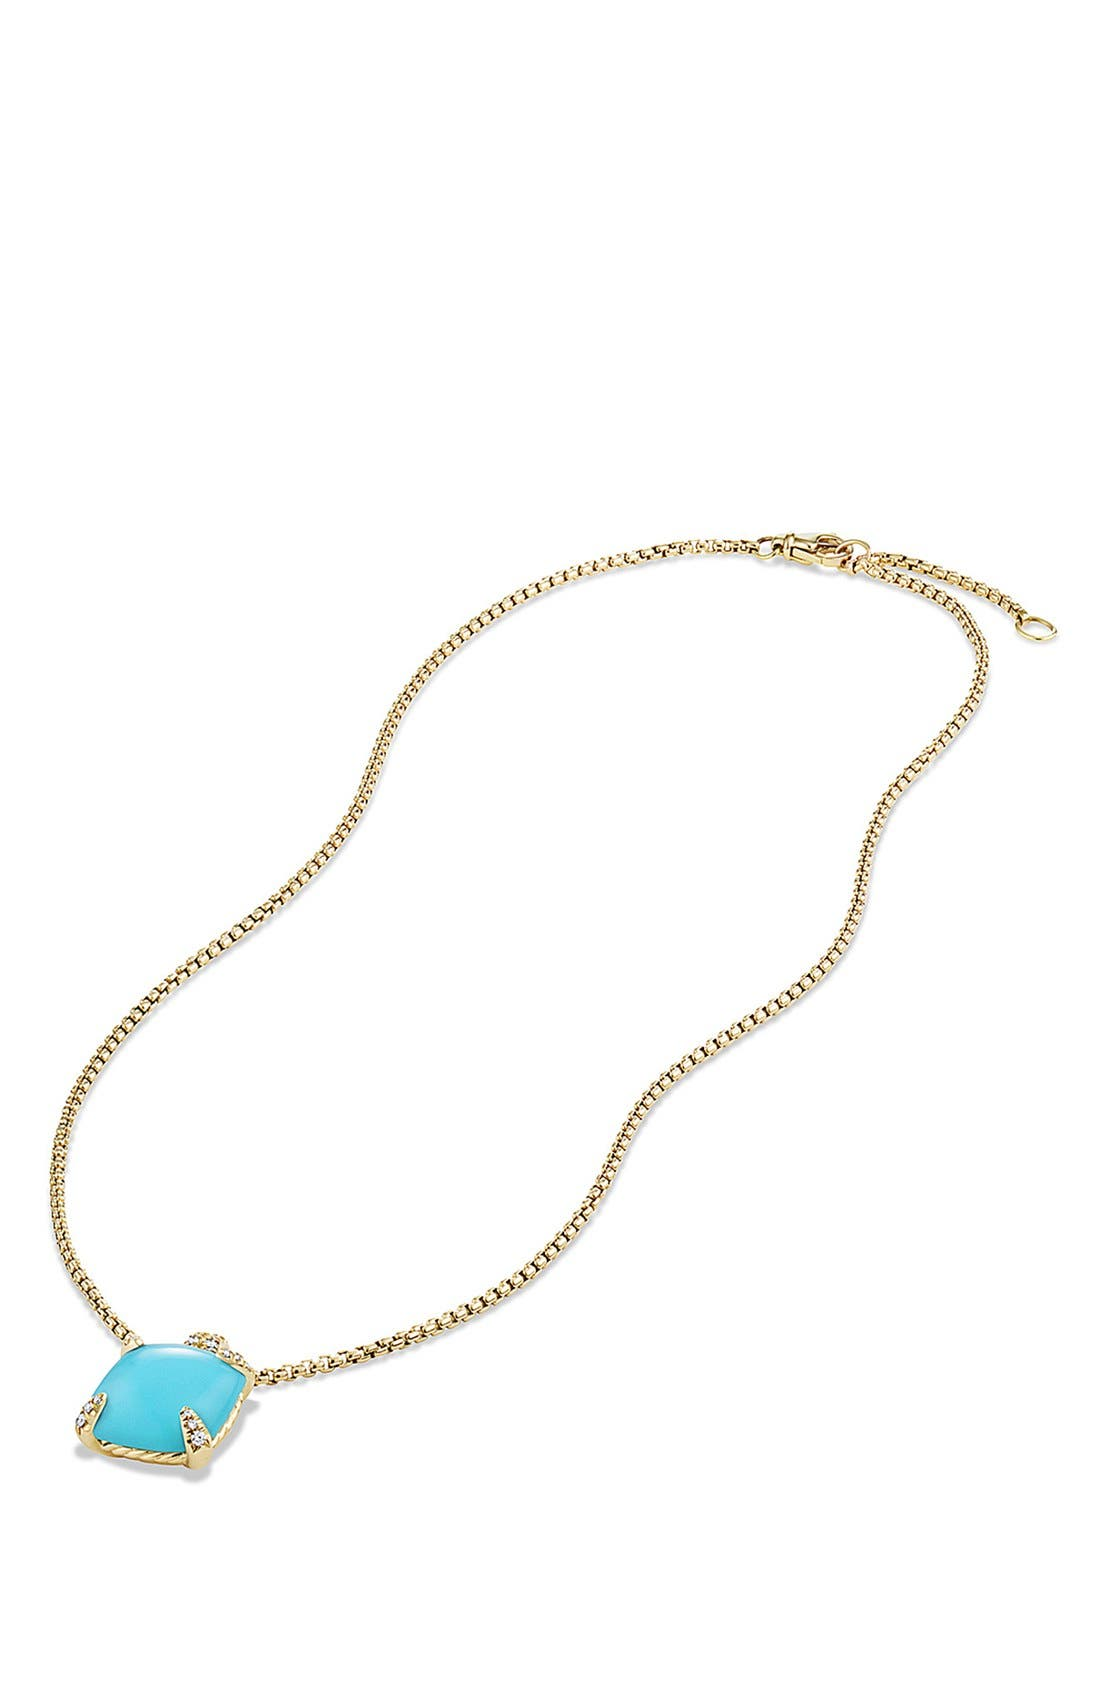 'Châtelaine' Pendant Necklace with Diamonds in 18K Gold,                             Alternate thumbnail 2, color,                             Turquoise